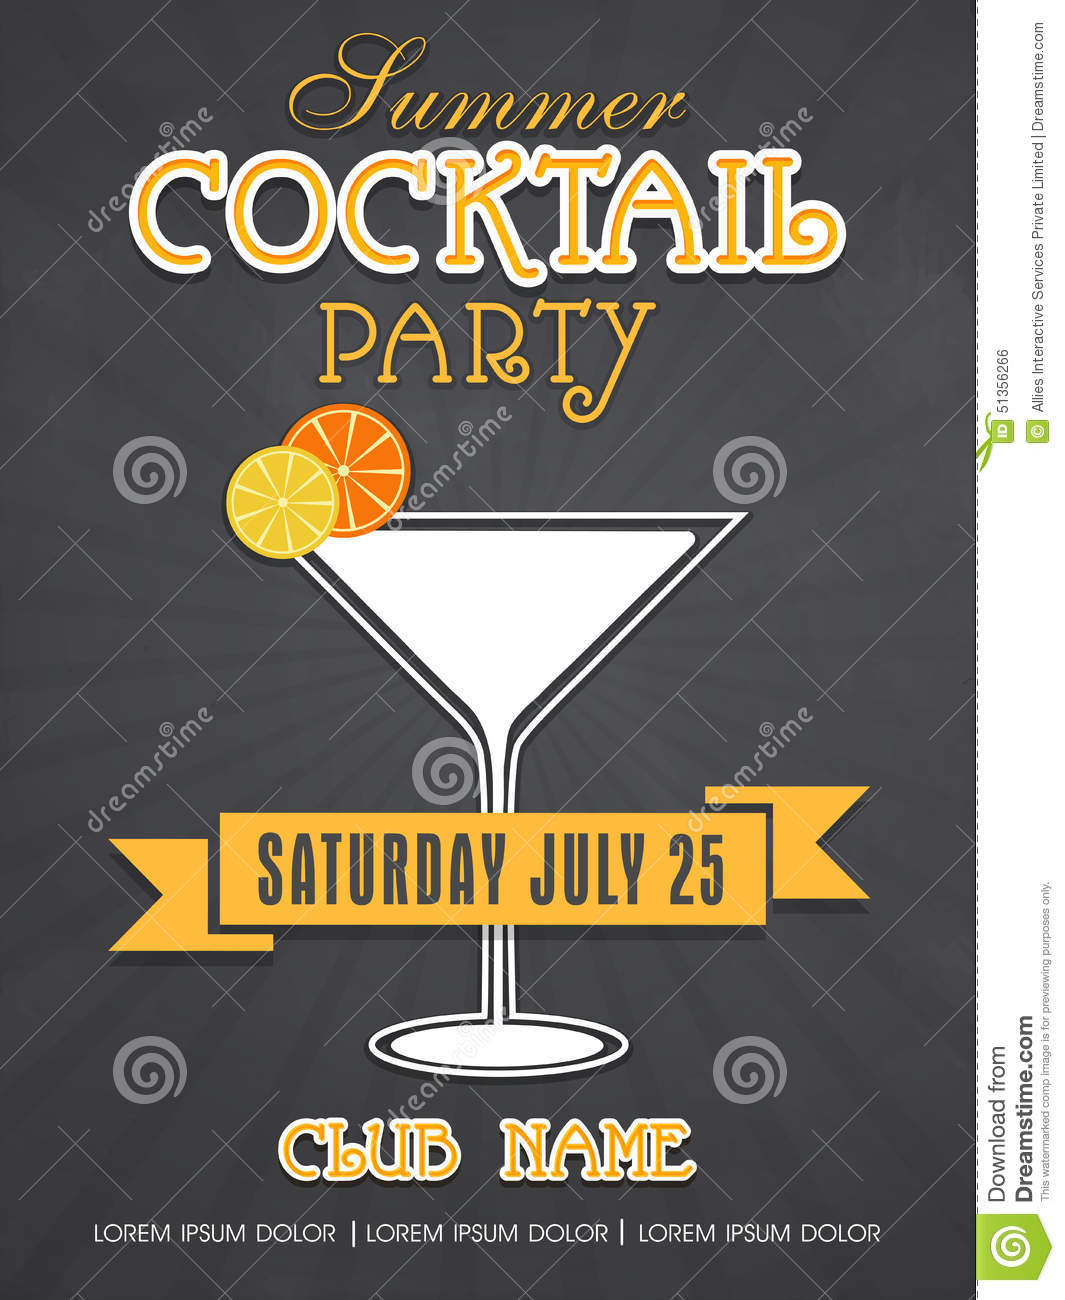 Cocktail Party Invitation Cards is awesome invitations template